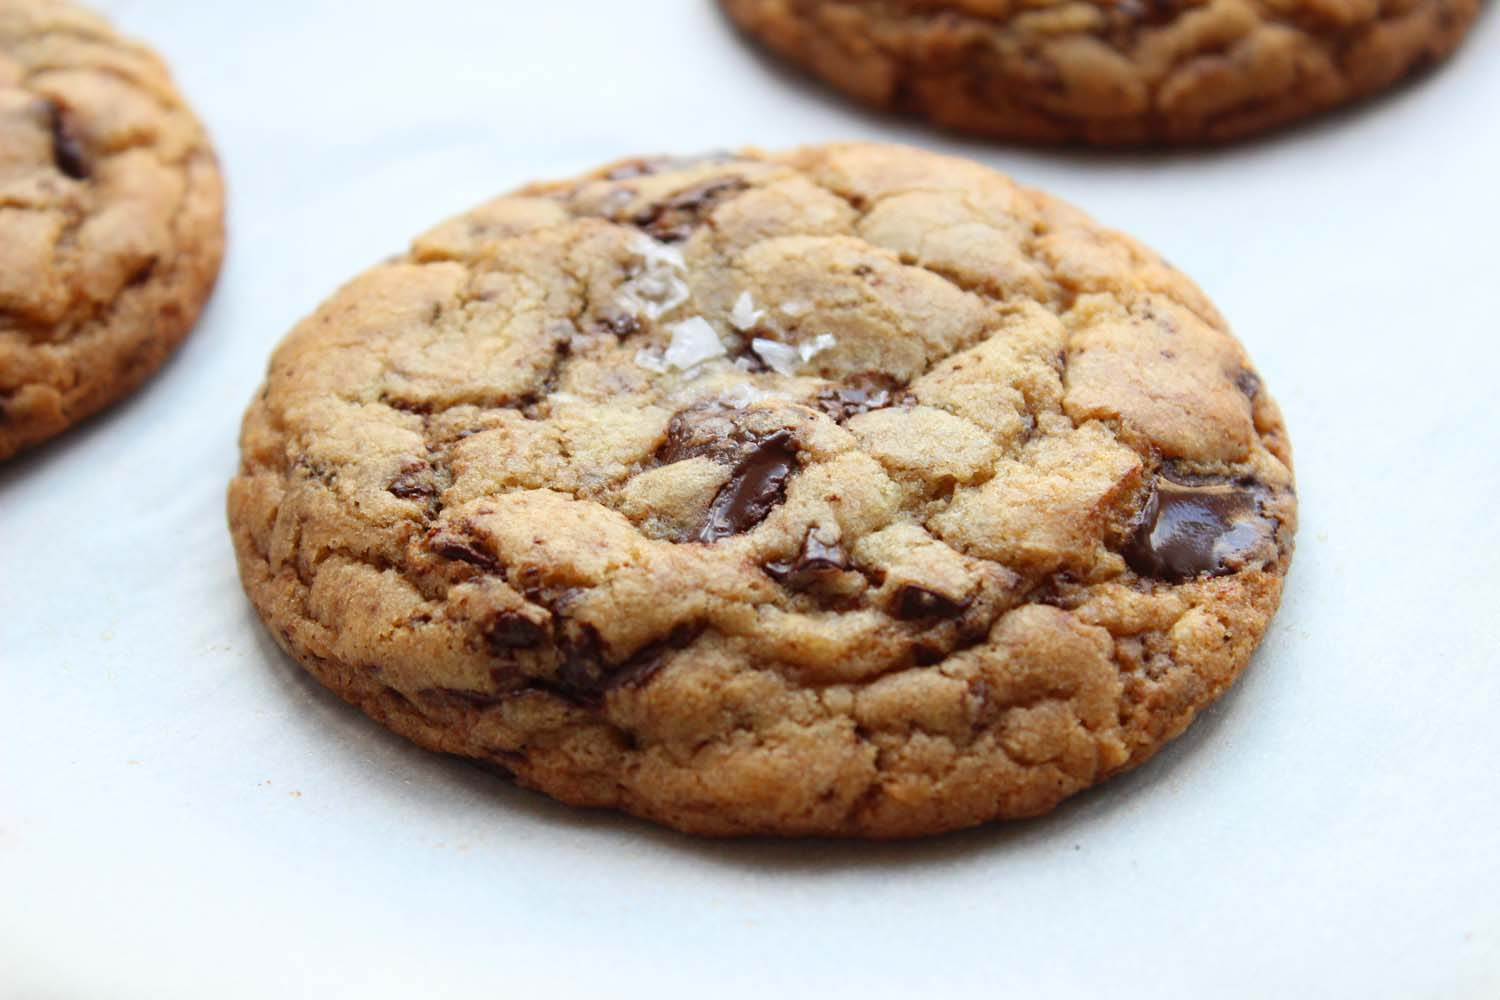 Chocolate Chip Cookies  | Image:  Laura Messersmith